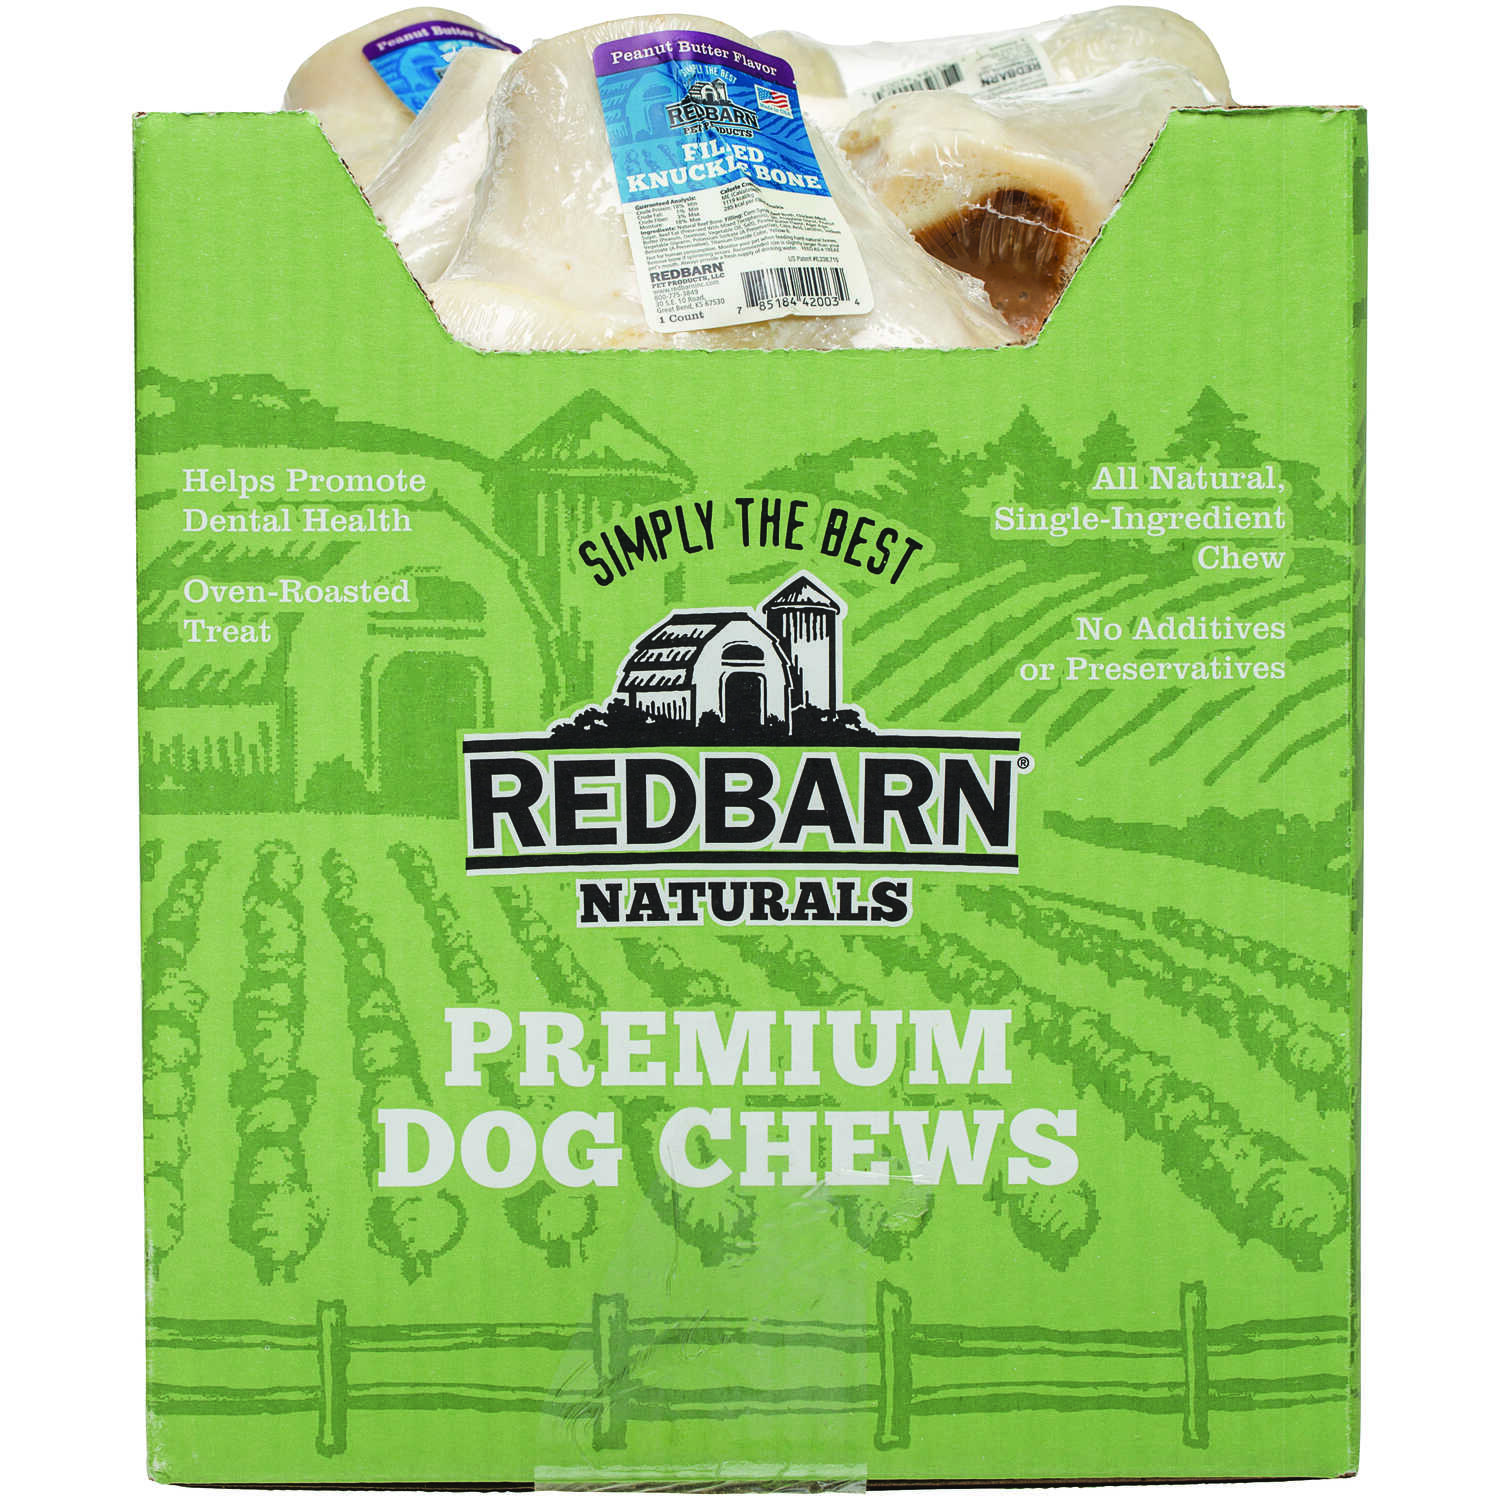 Redbarn  Dog Treats  Peanut Butter  Dog  Bone  1  1 pk